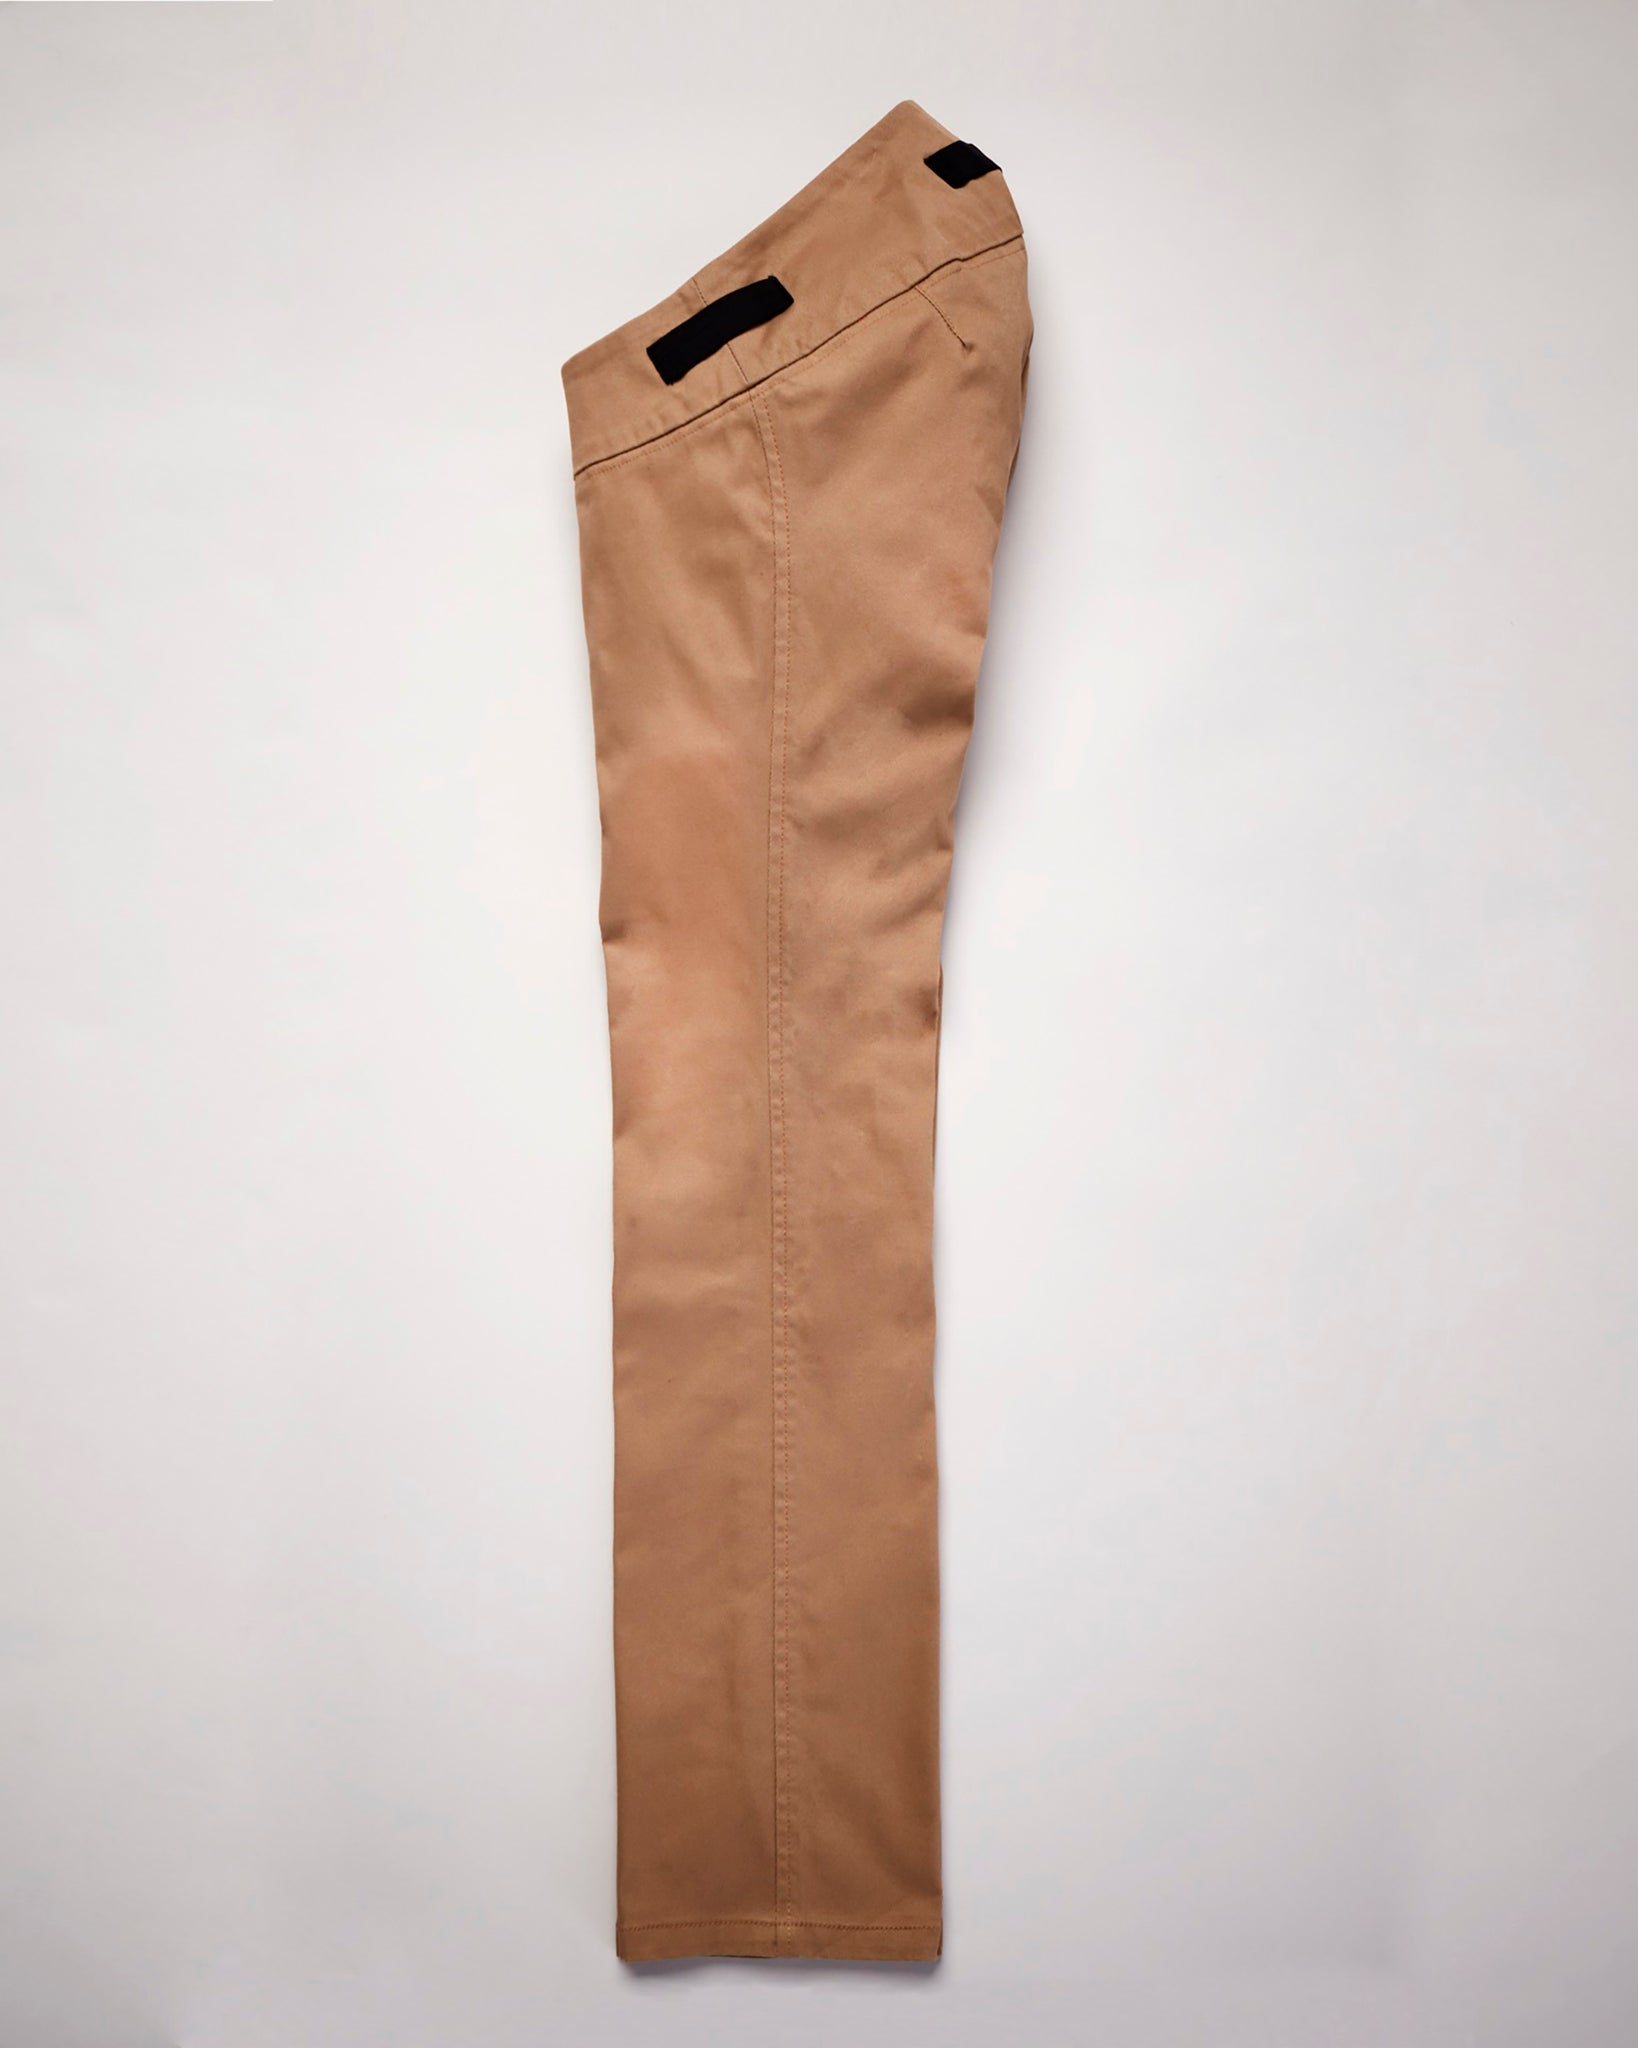 Seated Chino Yoga Waist - Khaki